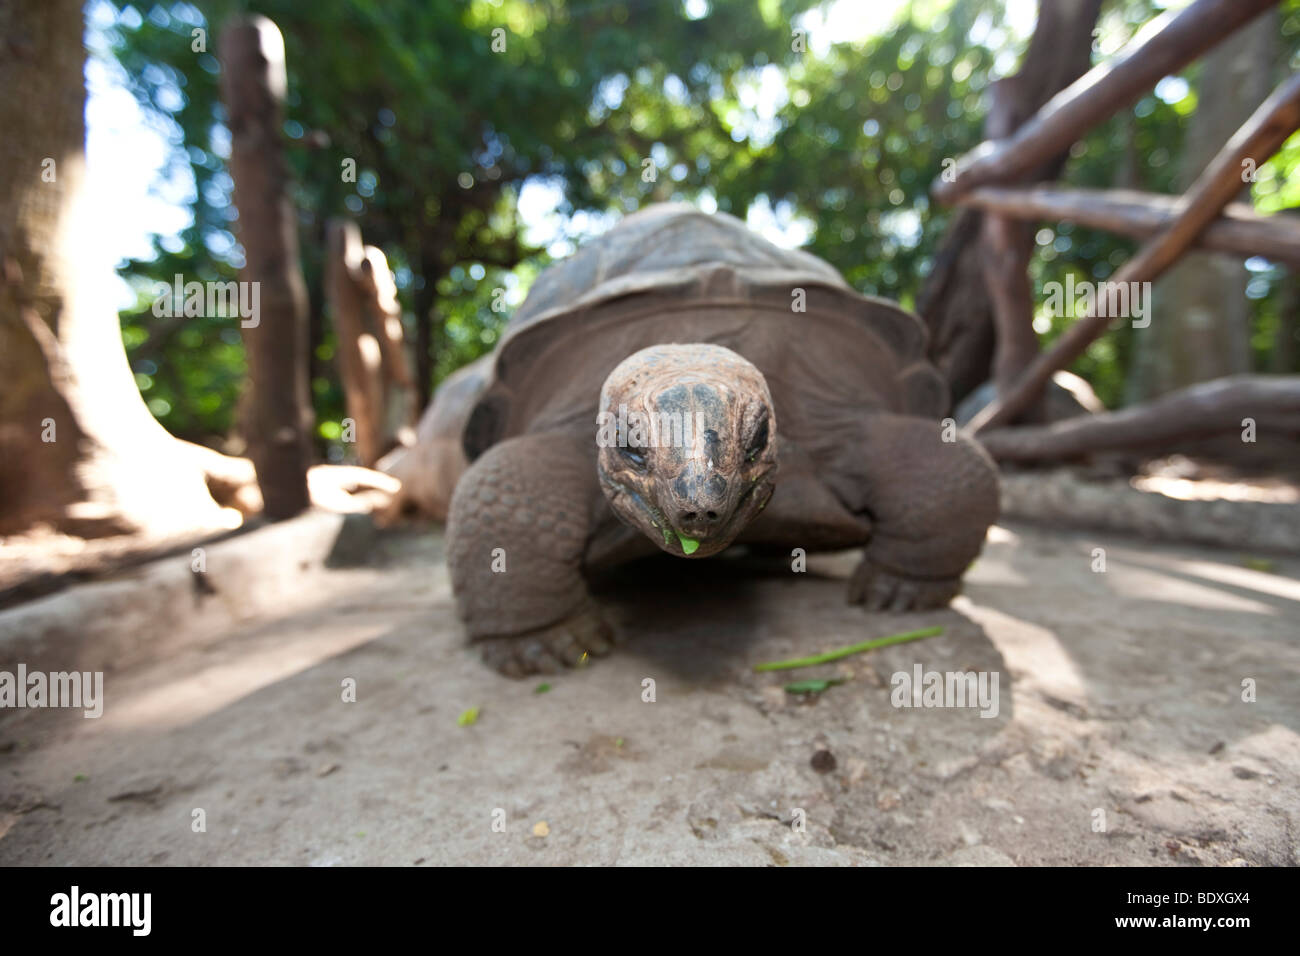 Tortoise from the Seychelles, which has been imported to Zanzibar, Prison Iceland, Zanzibar, Tanzania, Africa - Stock Image